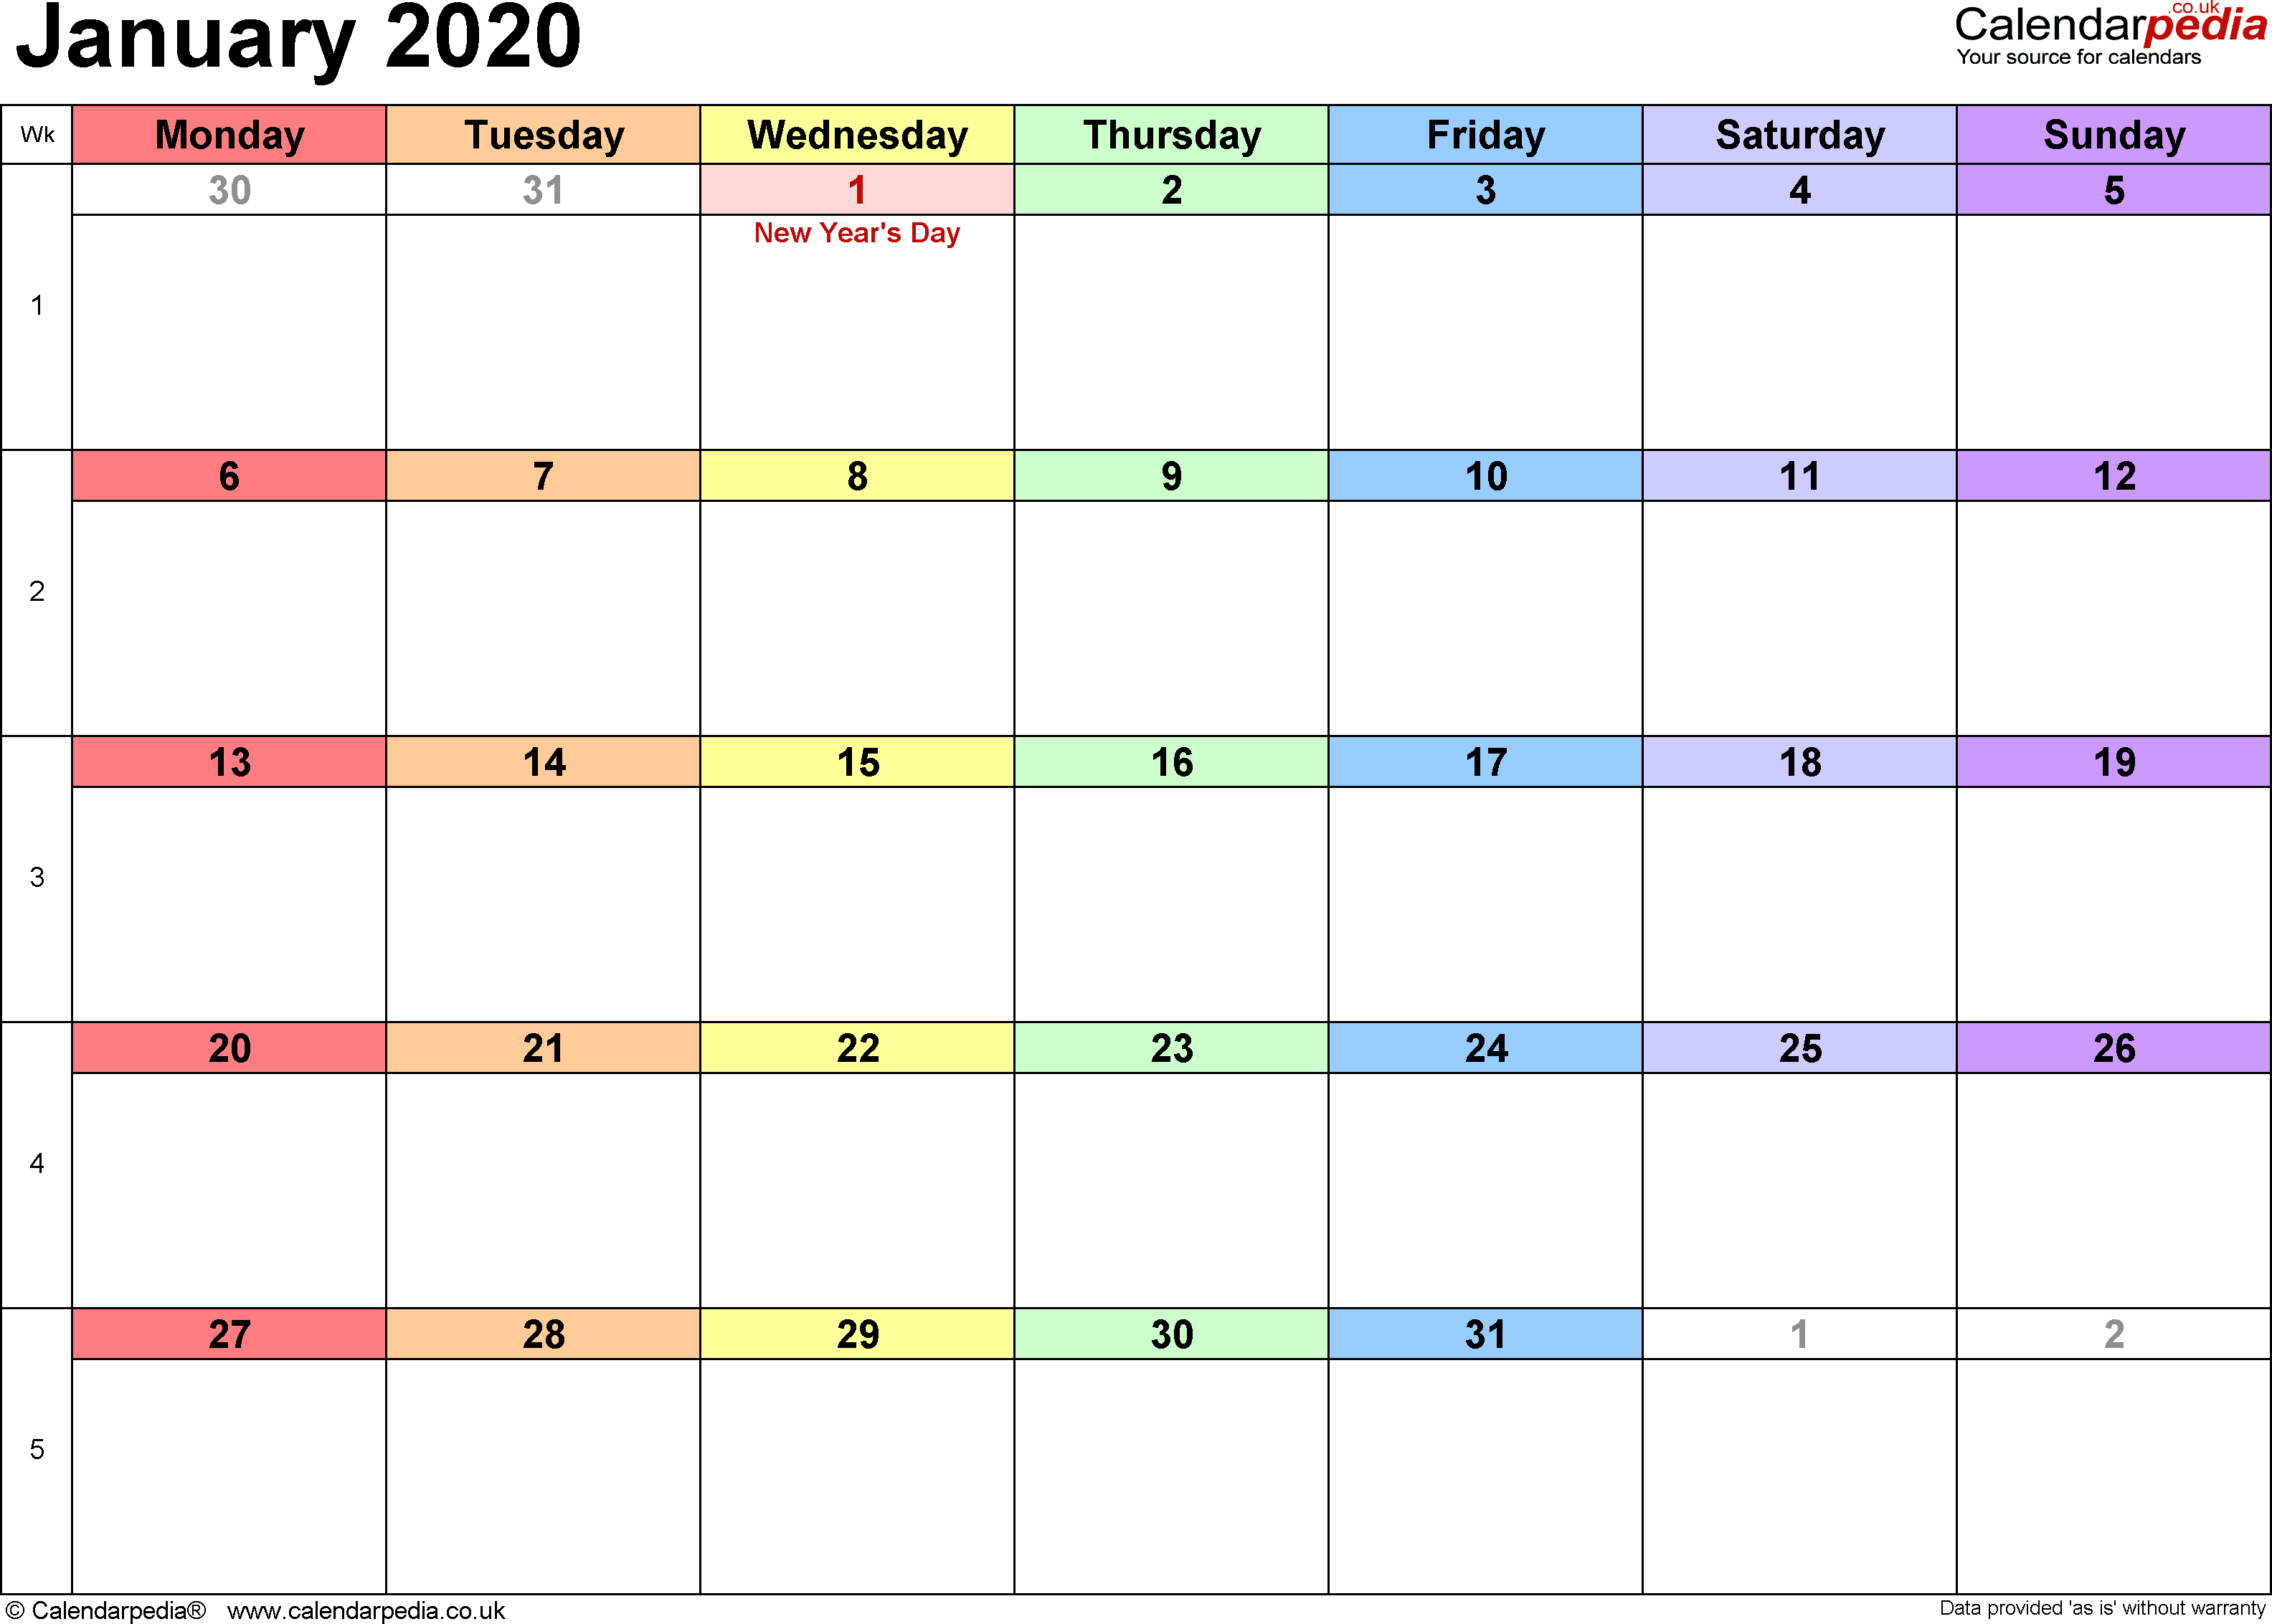 Calendar January 2020 UK, Bank Holidays, Excel/PDF/Word ...